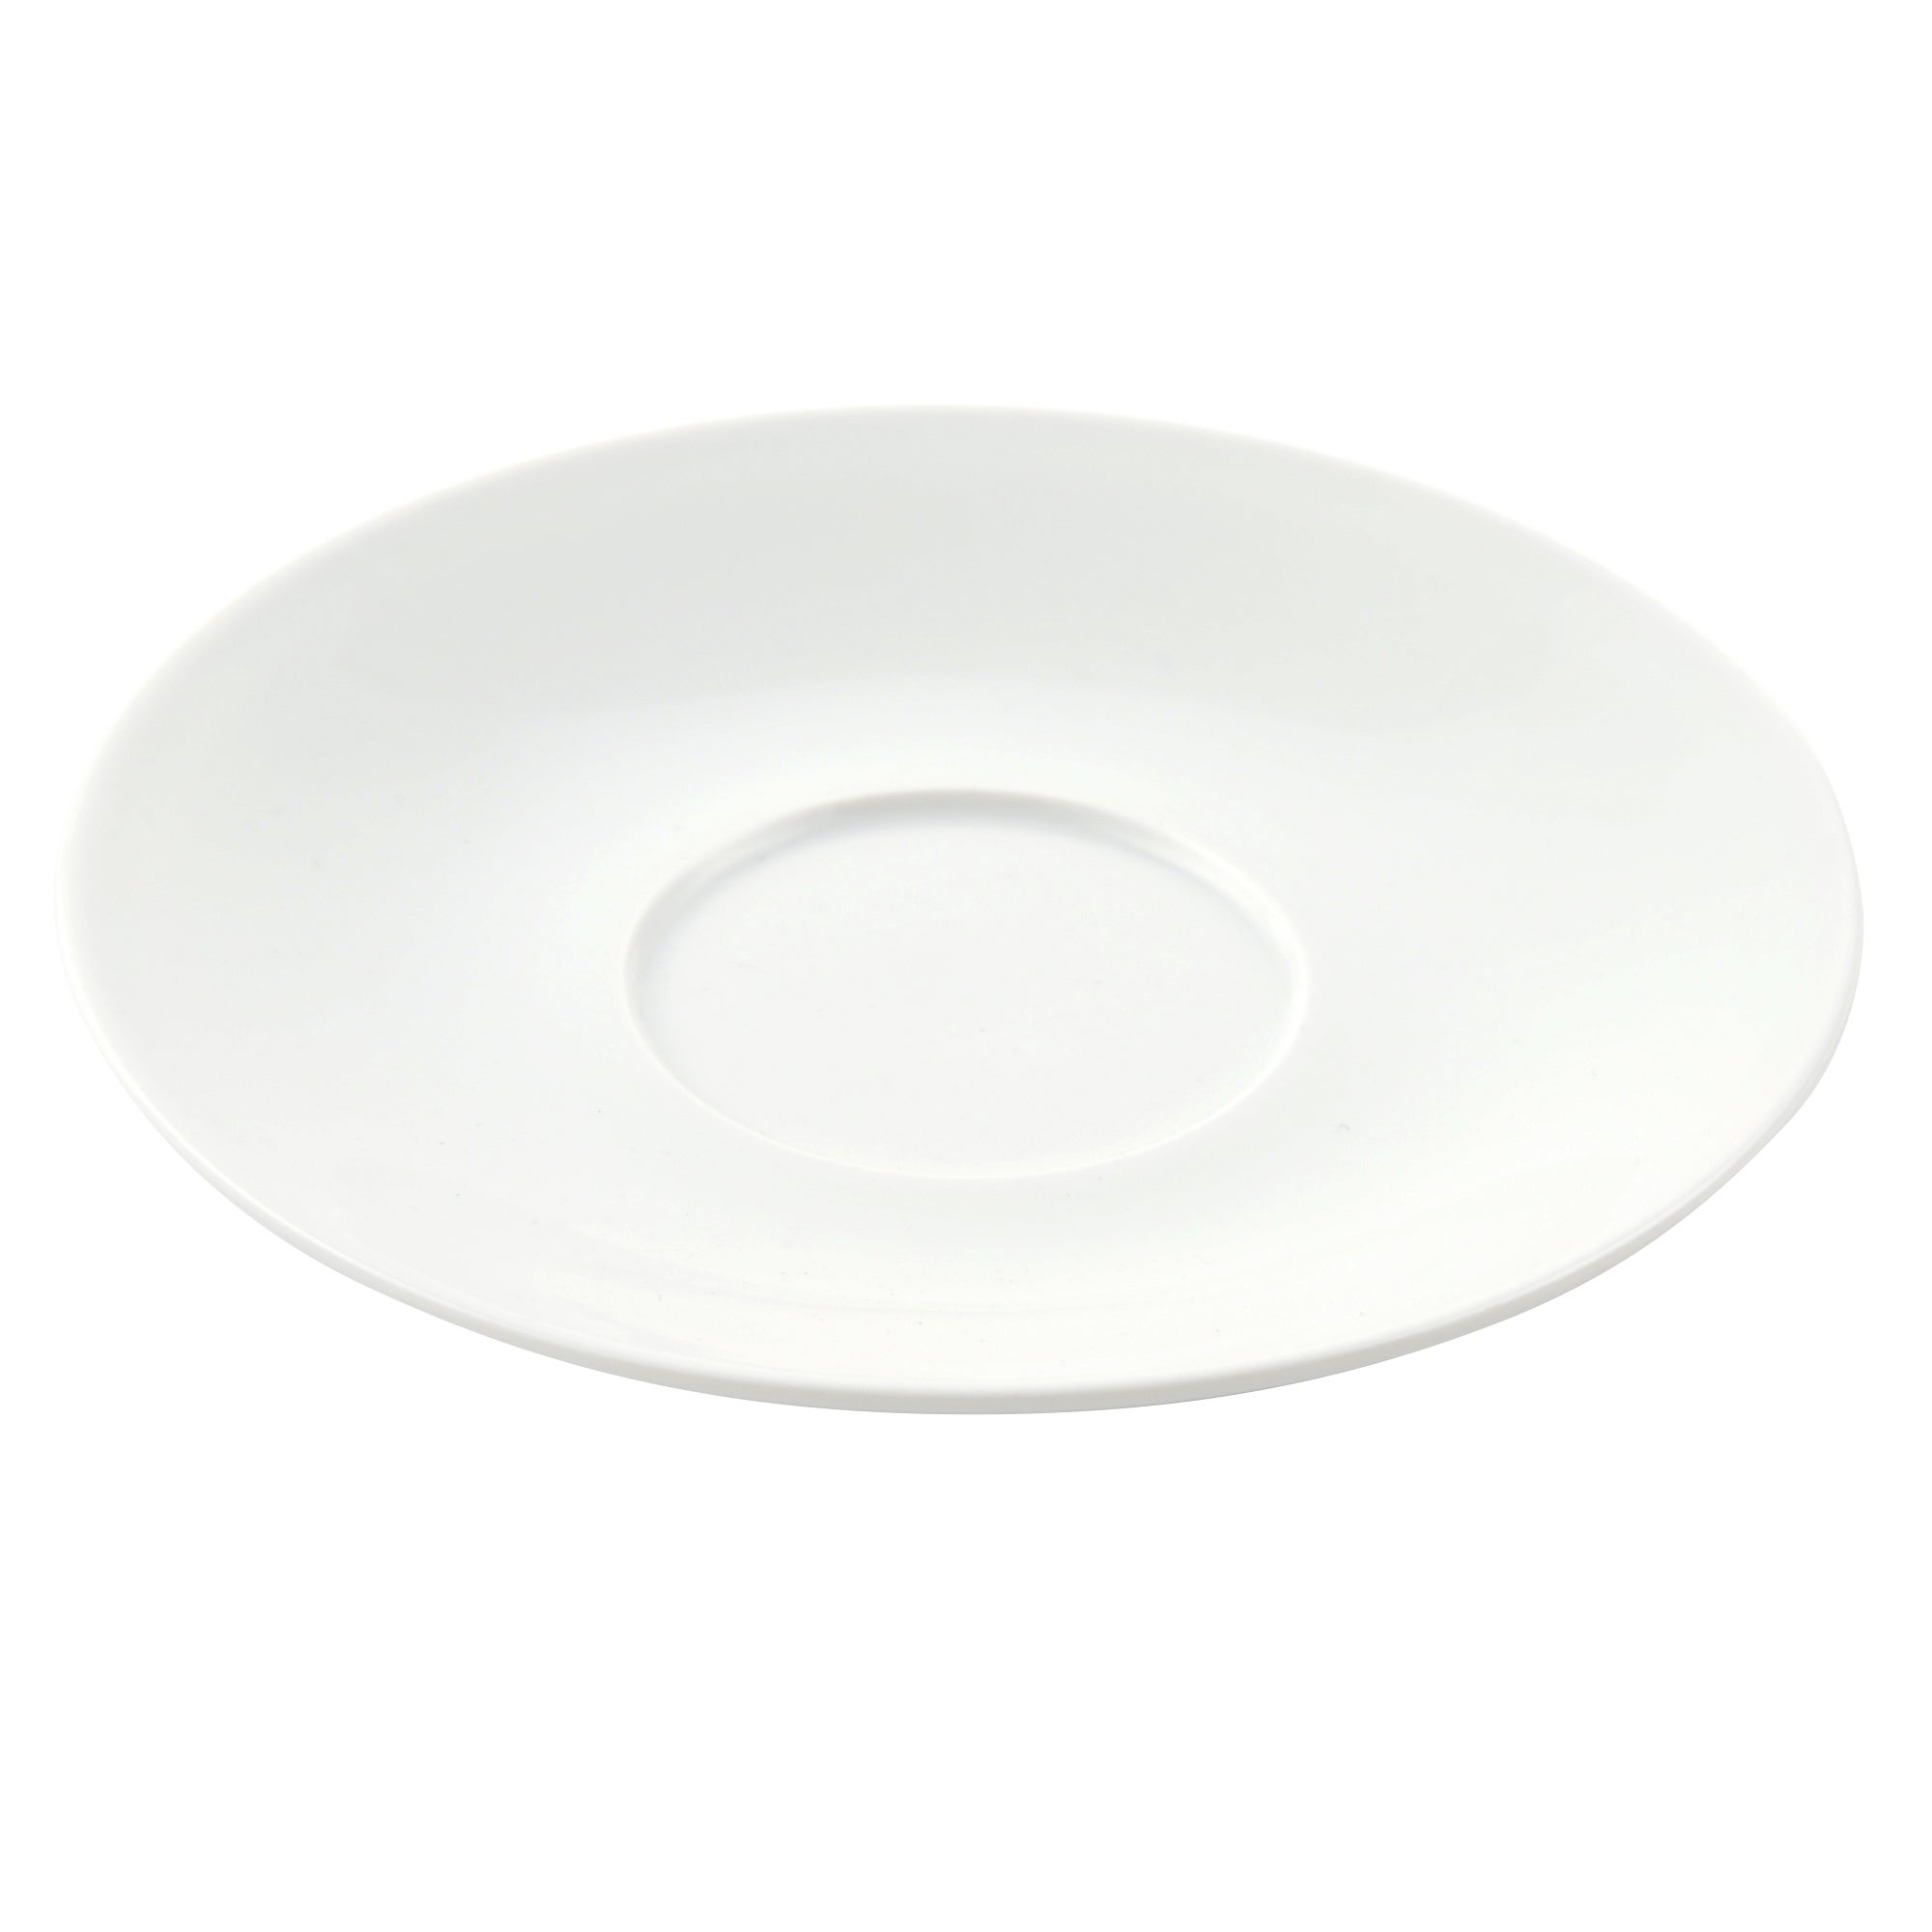 Purity Collection Saucer